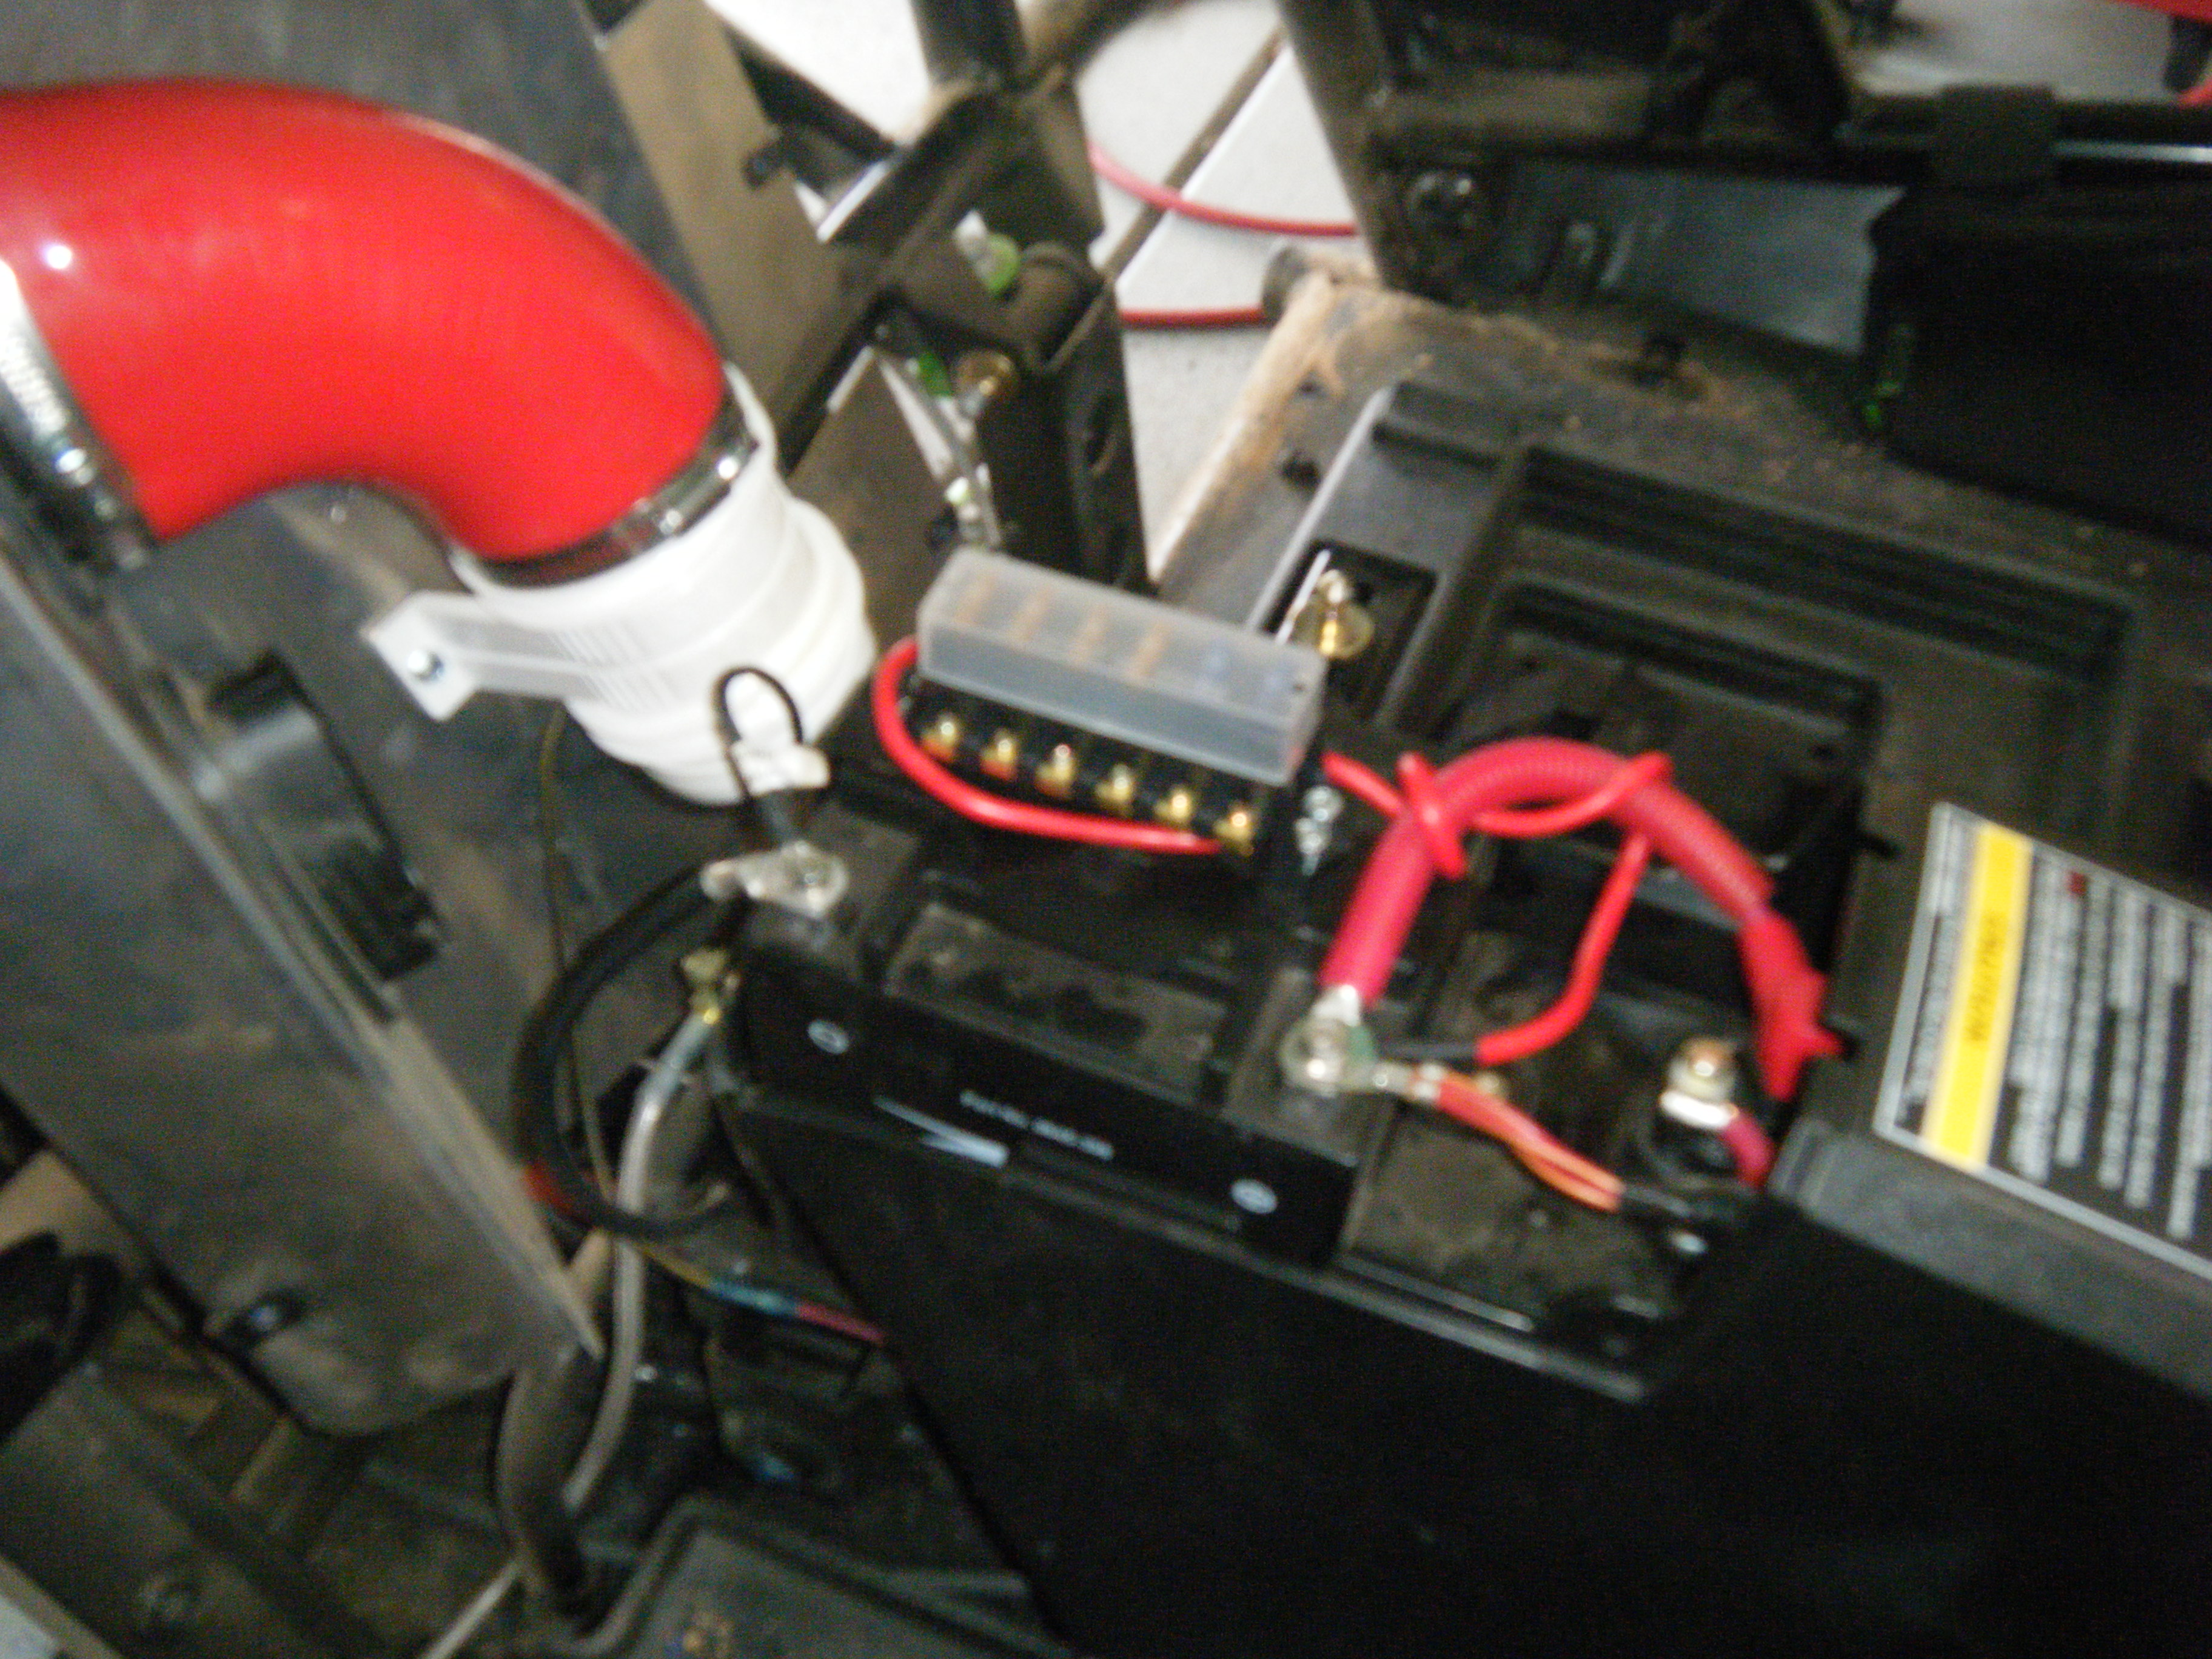 adding an auxiliary fuse box chrislanepics 014 jpg views 257 size 2 18 mb